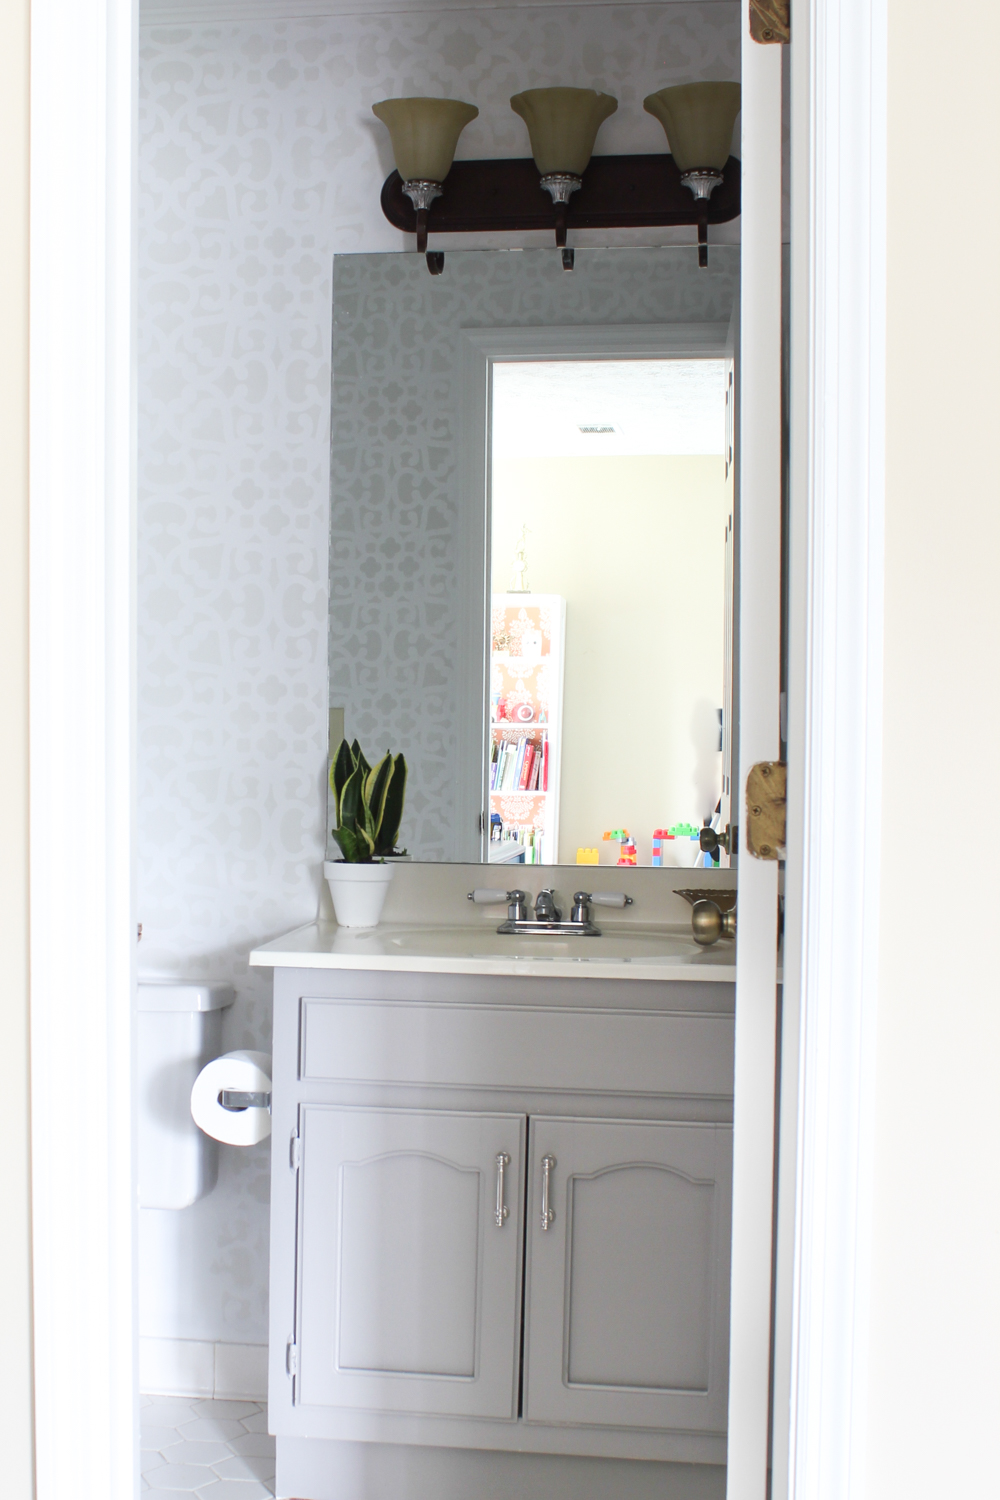 Bathroom makeover stenciled walls plus a giveaway erin spain i removed two large towel racks that kept falling down and patched the walls amipublicfo Images